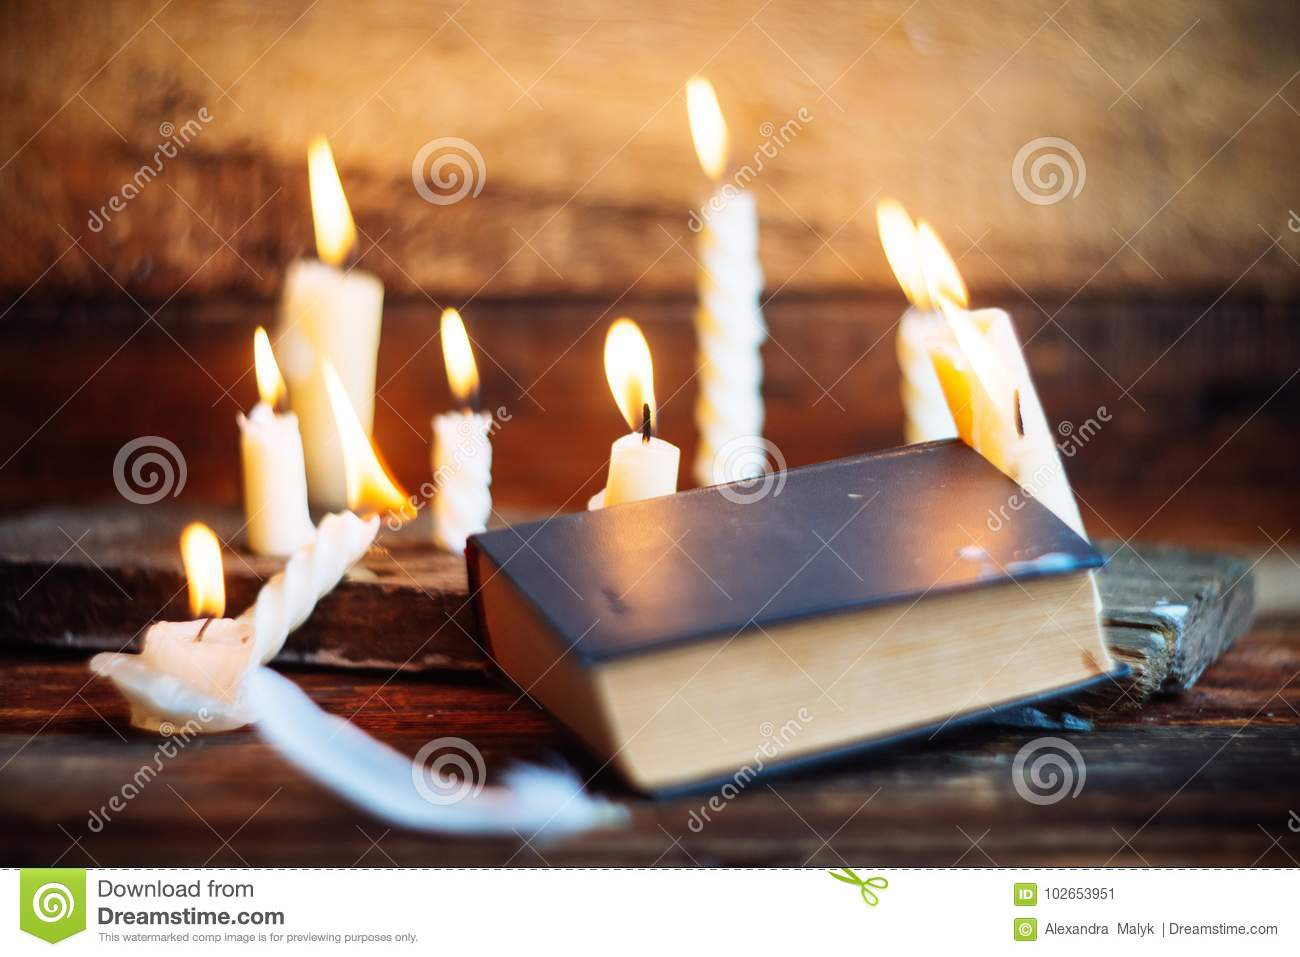 Three Magic Books In Candlelight On The Wooden Table In The